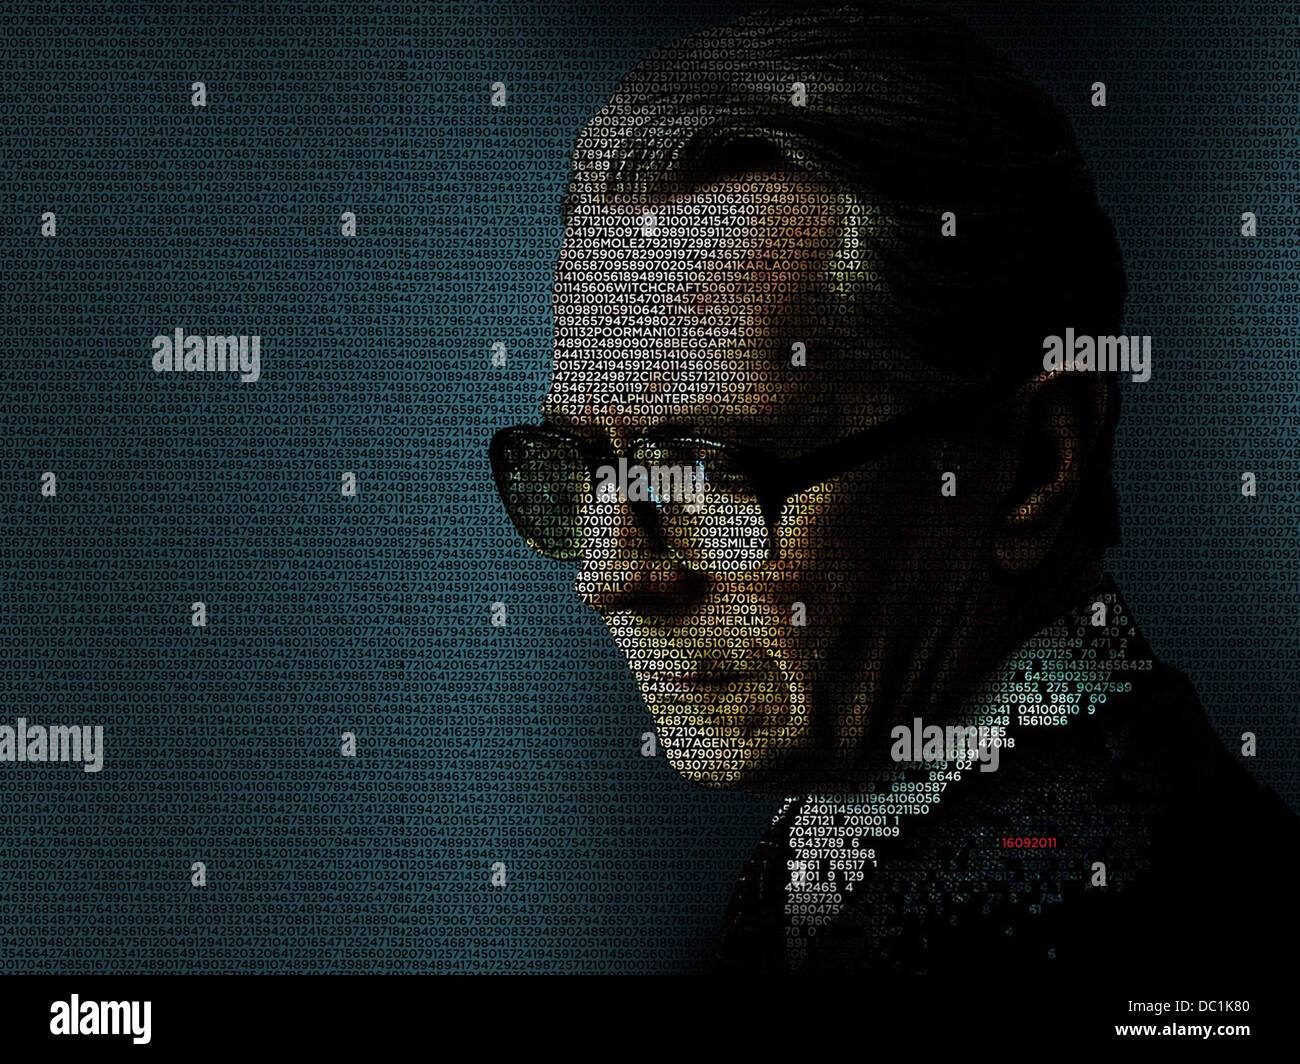 TINKER TAILOR SOLDIER SPY (2011) GARY OLDMAN TOMAS ALFREDSON (DIR) 013 MOVIESTORE COLLECTION LTD - Stock Image